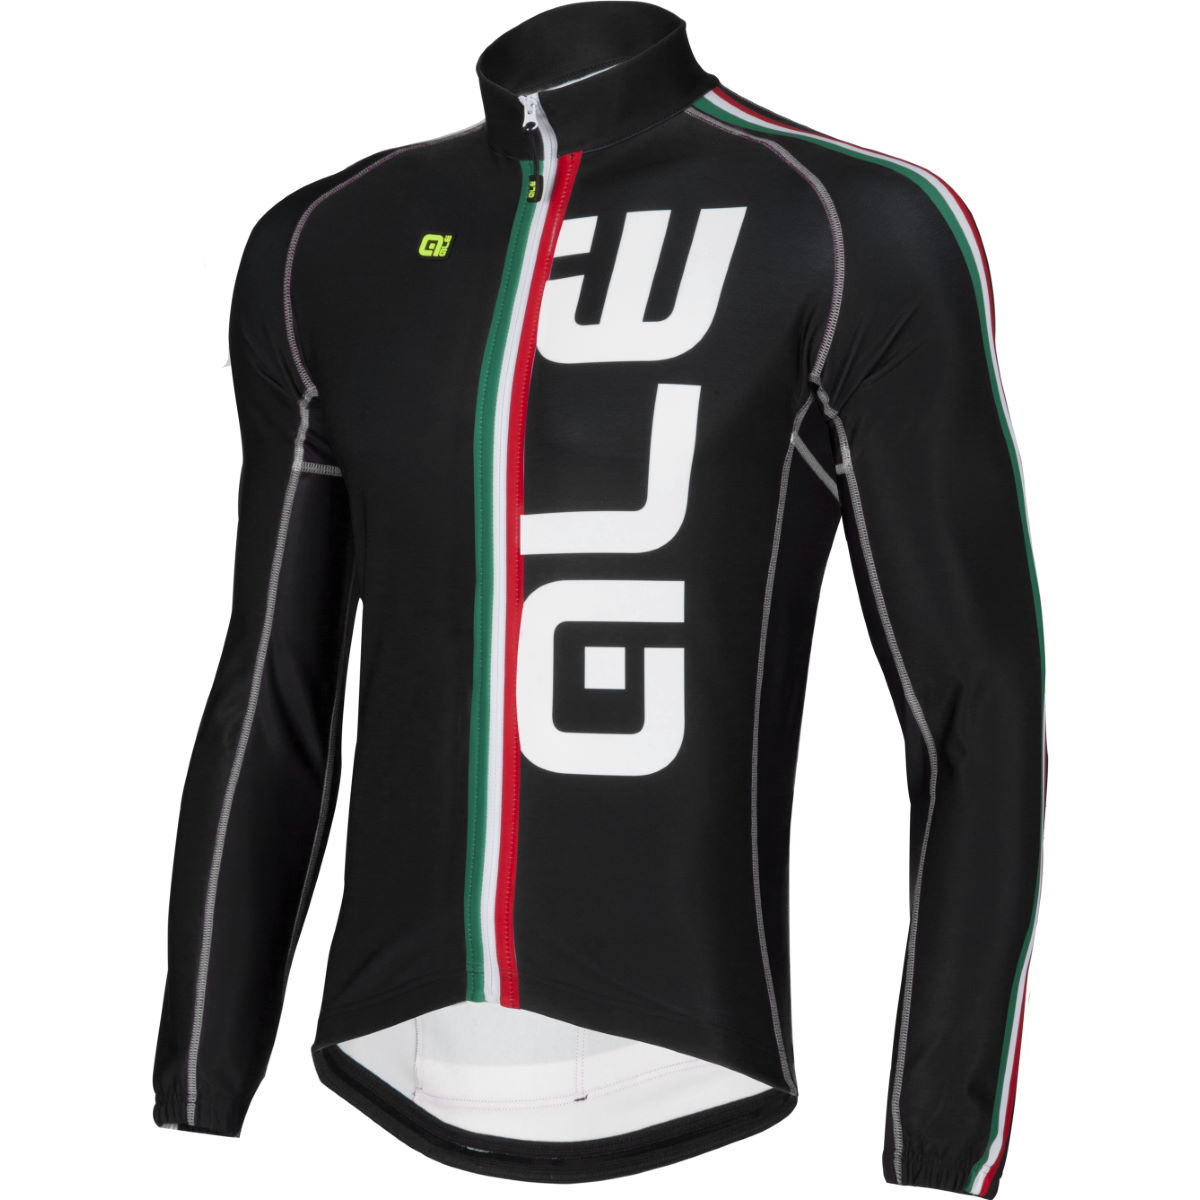 Maillot cycliste Alé Italia Ultra Canale (manches longues, exclusivité) - Small Black/Italia Maillots vélo à manches longues